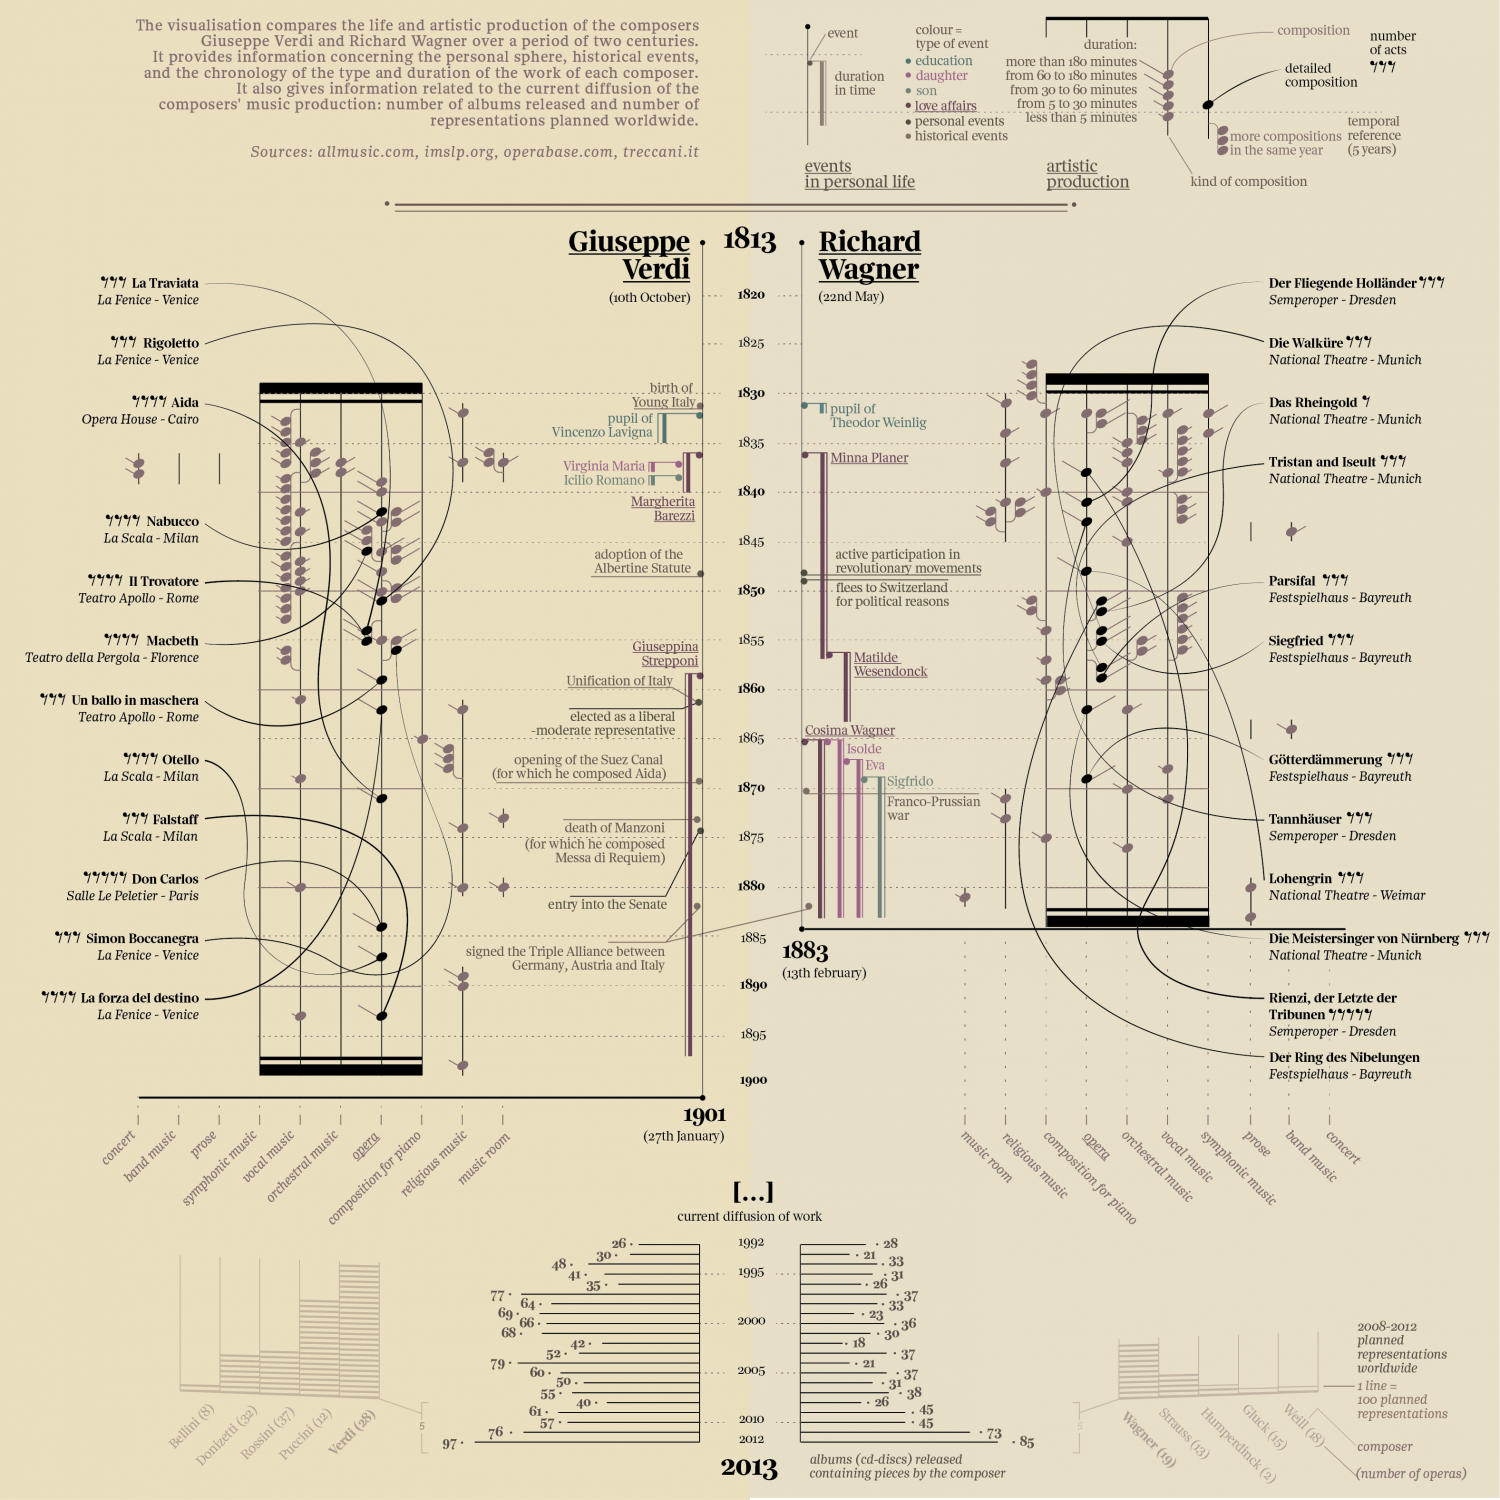 Dueling opera: Verdi and Wagner (English) Infographic